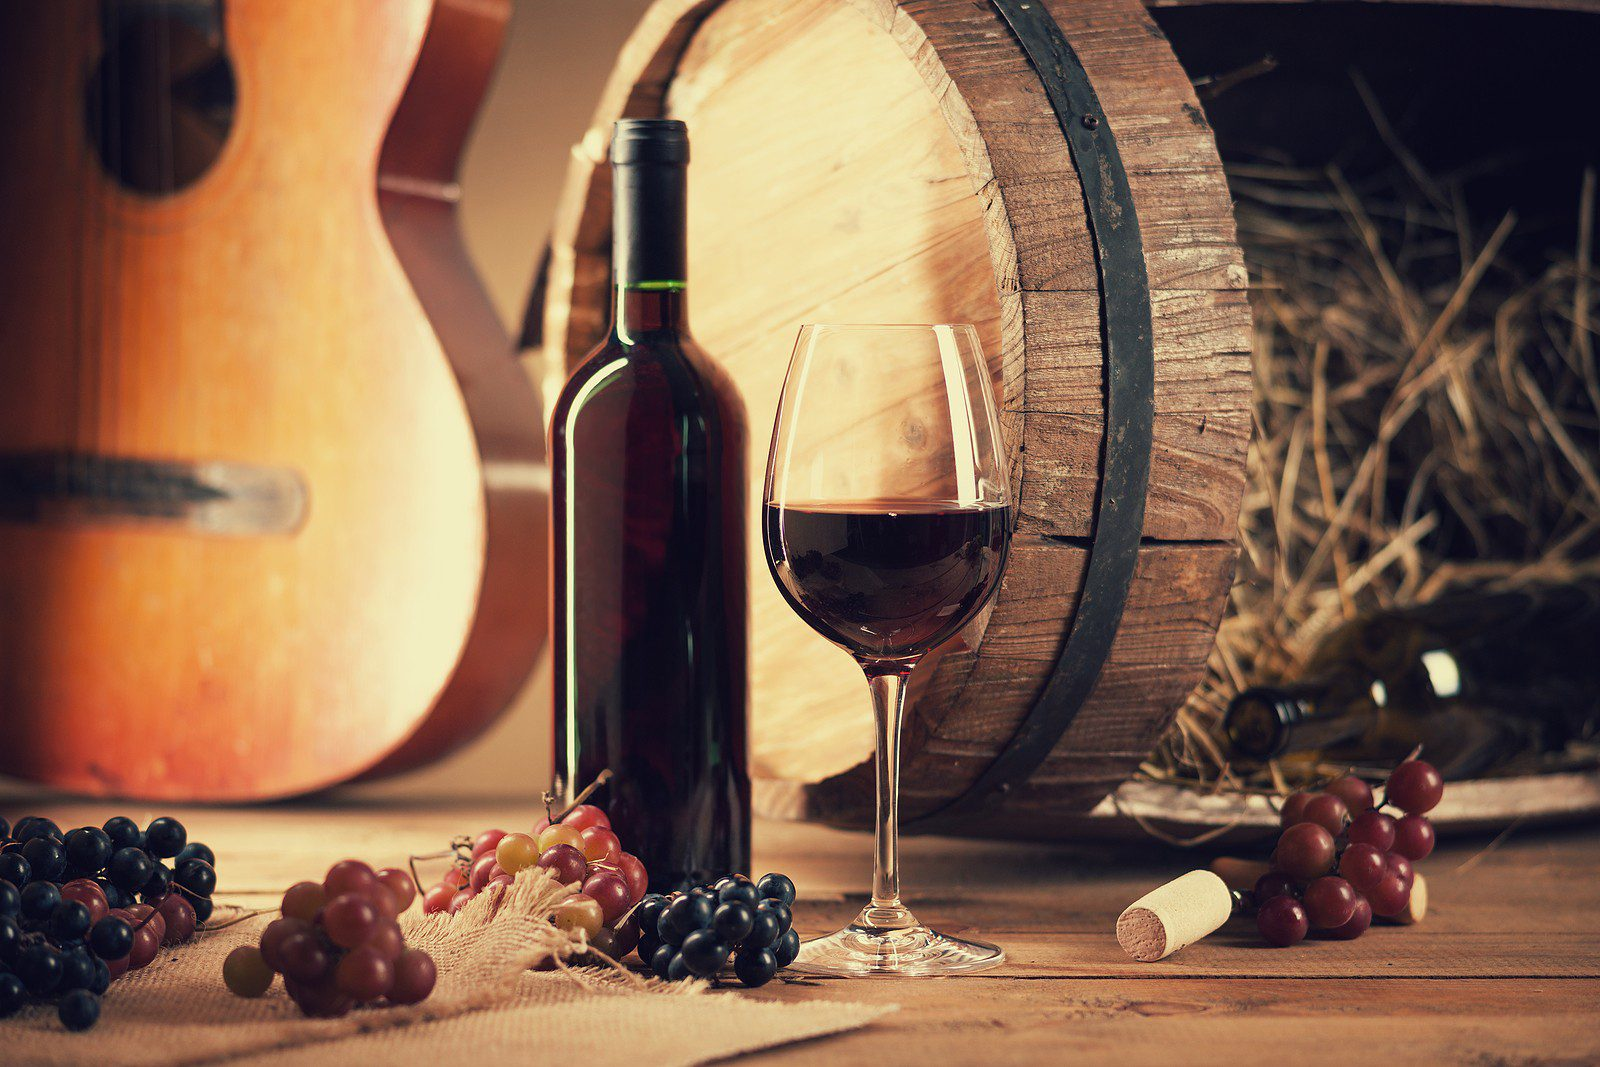 Montelle Winery Live Music Schedule for August 2021